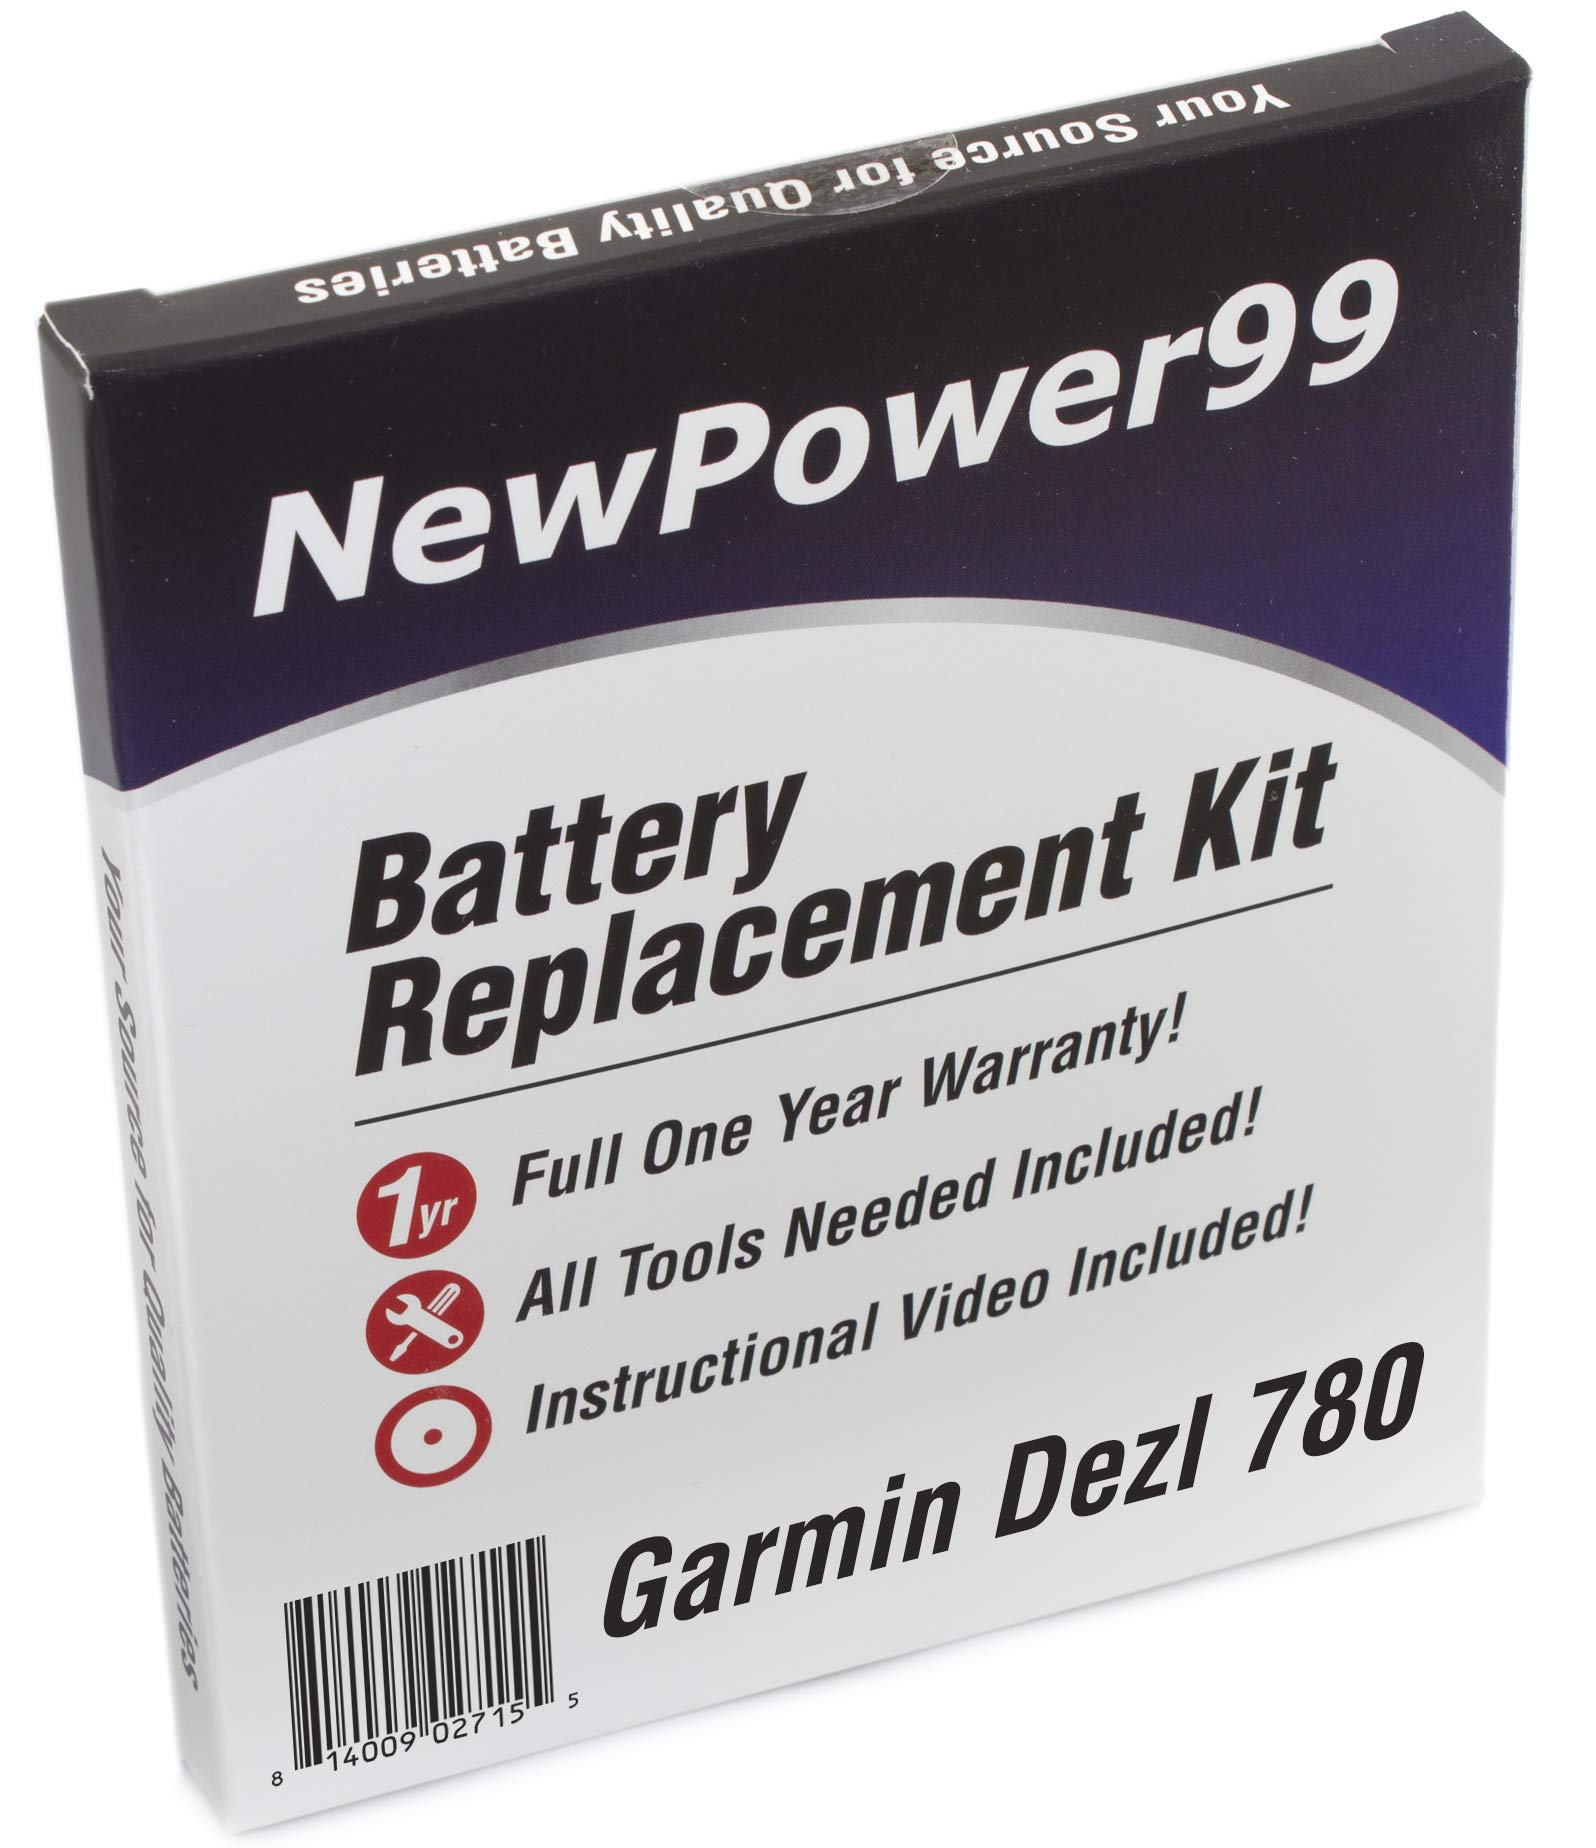 NewPower99 Battery Replacement Kit for Garmin Dezl 780 with Installation Video, Tools, and Extended Life Battery. by NewPower99